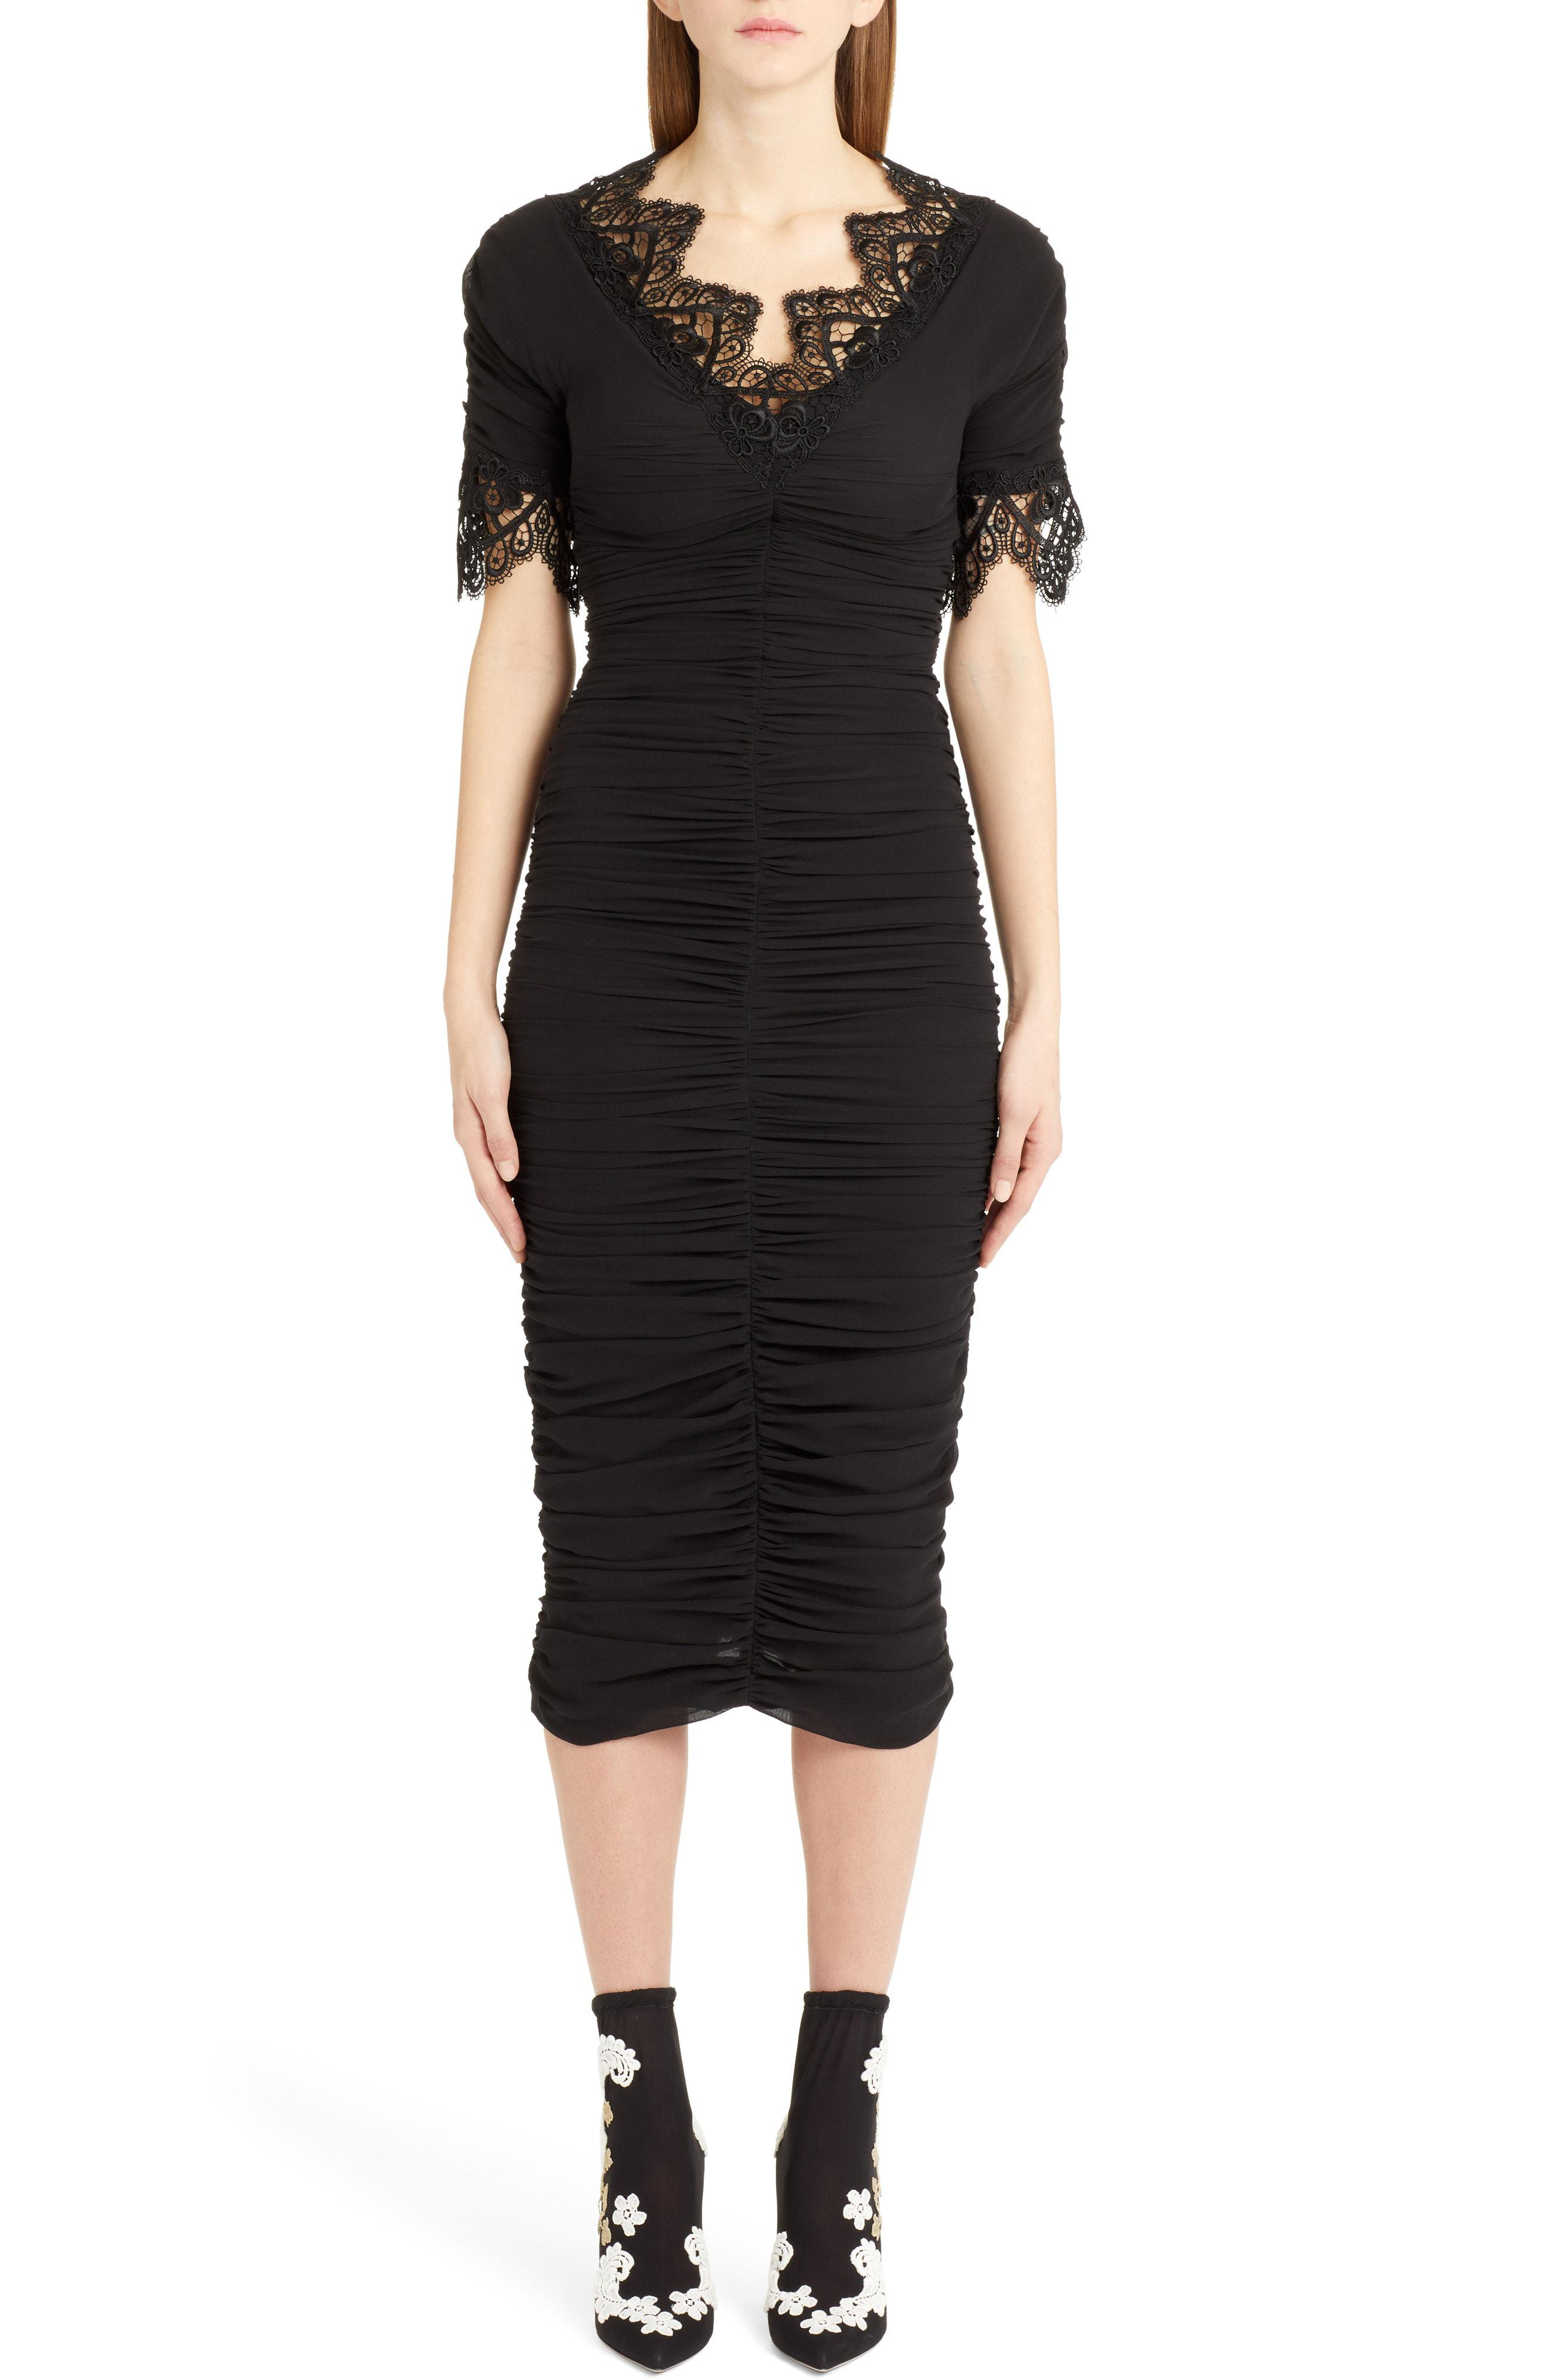 9908e9516e337 Lyst - Dolce & Gabbana Lace Trim Ruched Silk Blend Dress in Black